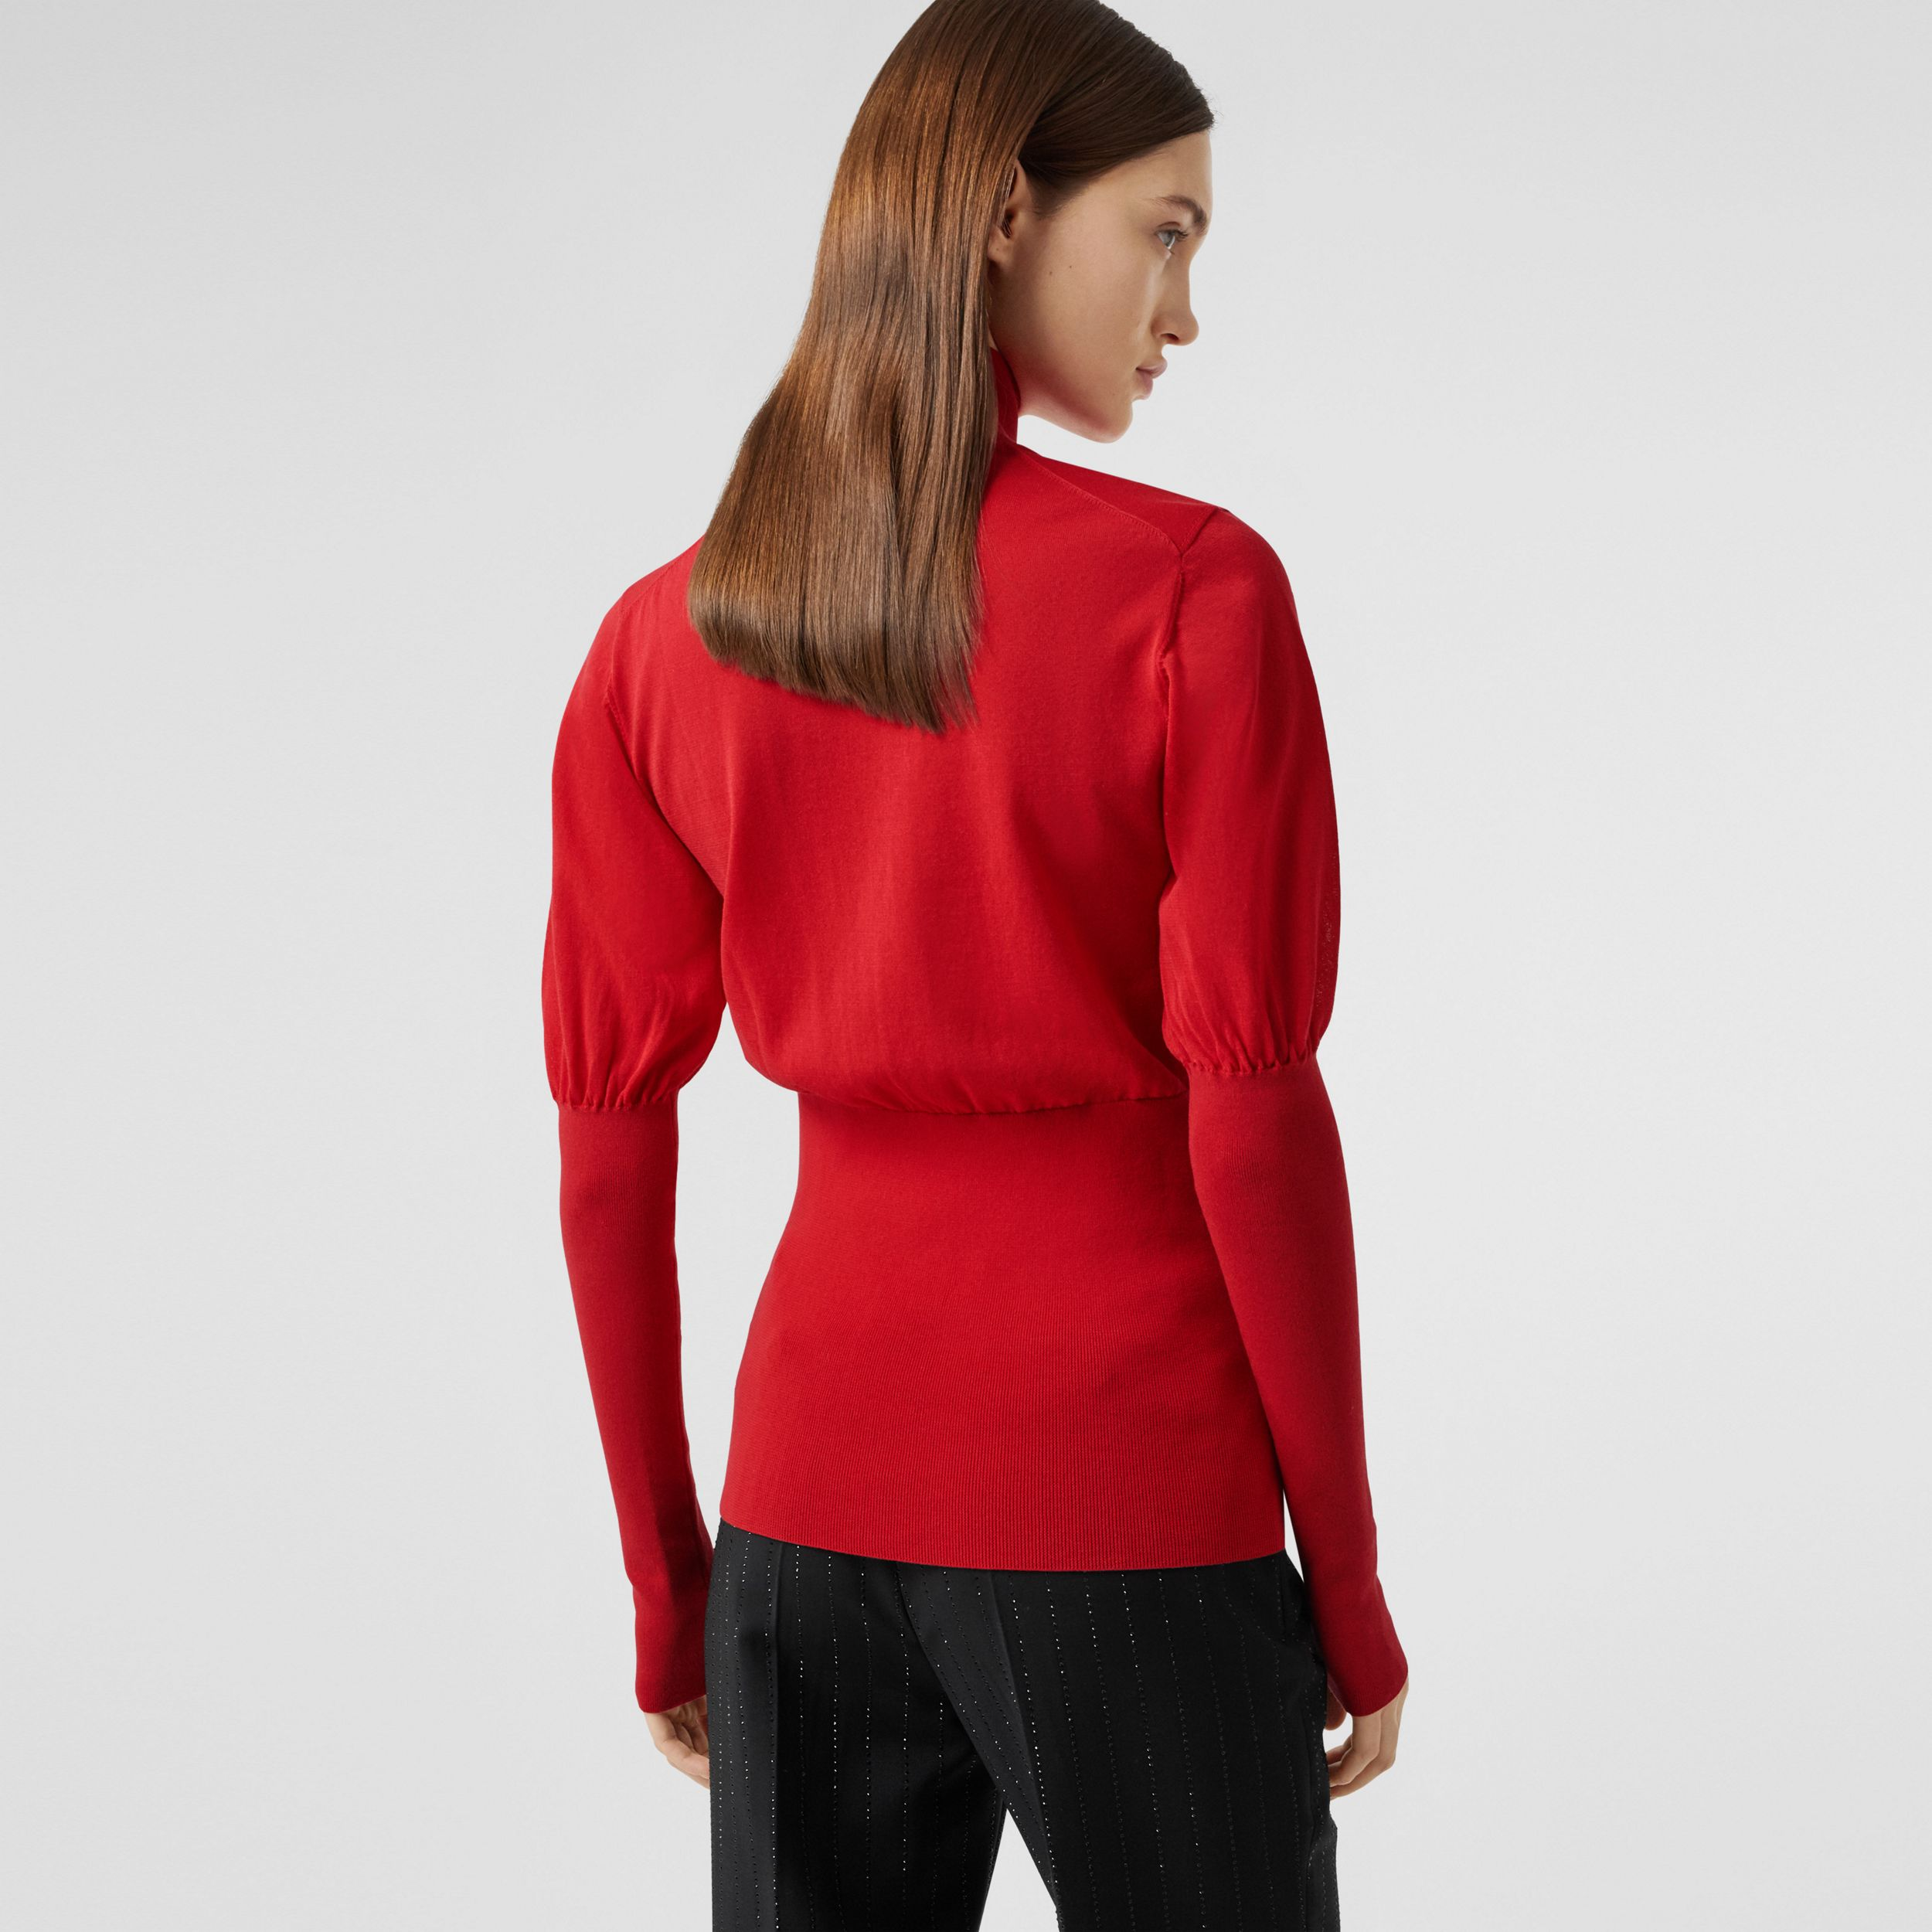 Puff-sleeve Knit Cotton Blend Turtleneck Sweater in Bright Red - Women | Burberry - 3